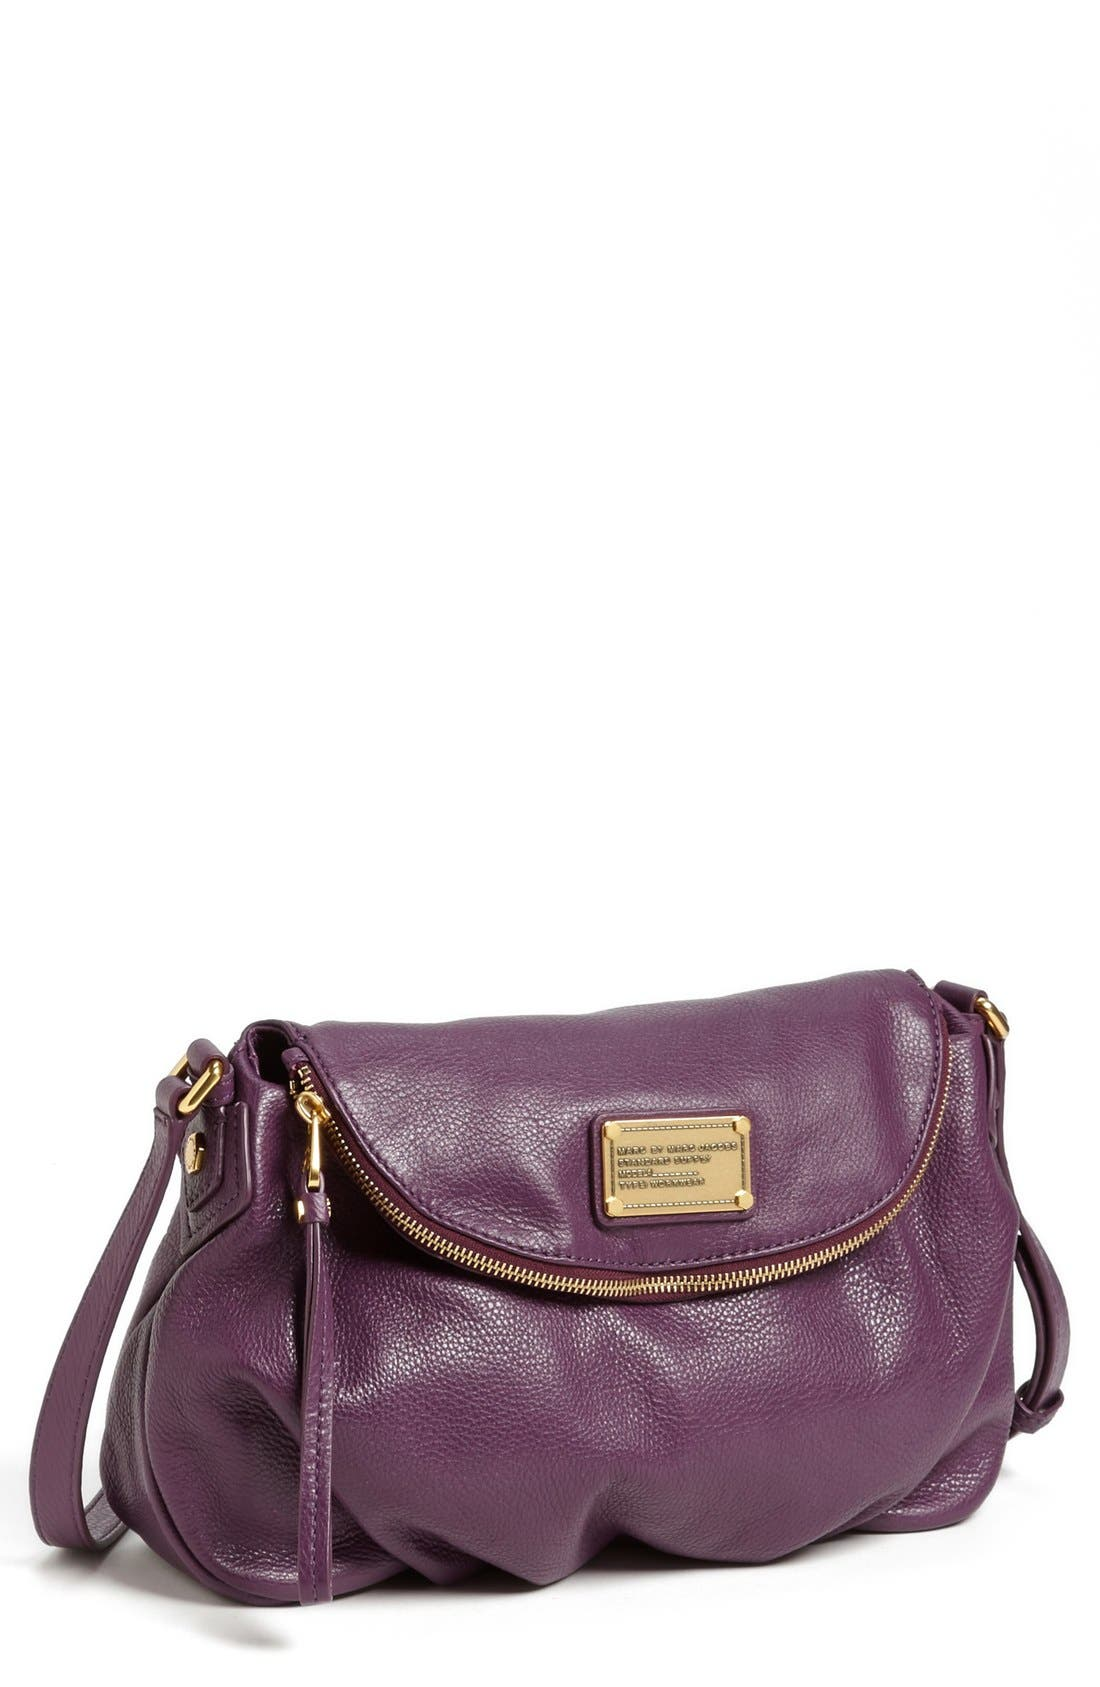 MARC BY MARC JACOBS 'Classic Q - Natasha' Crossbody Bag,                             Main thumbnail 10, color,